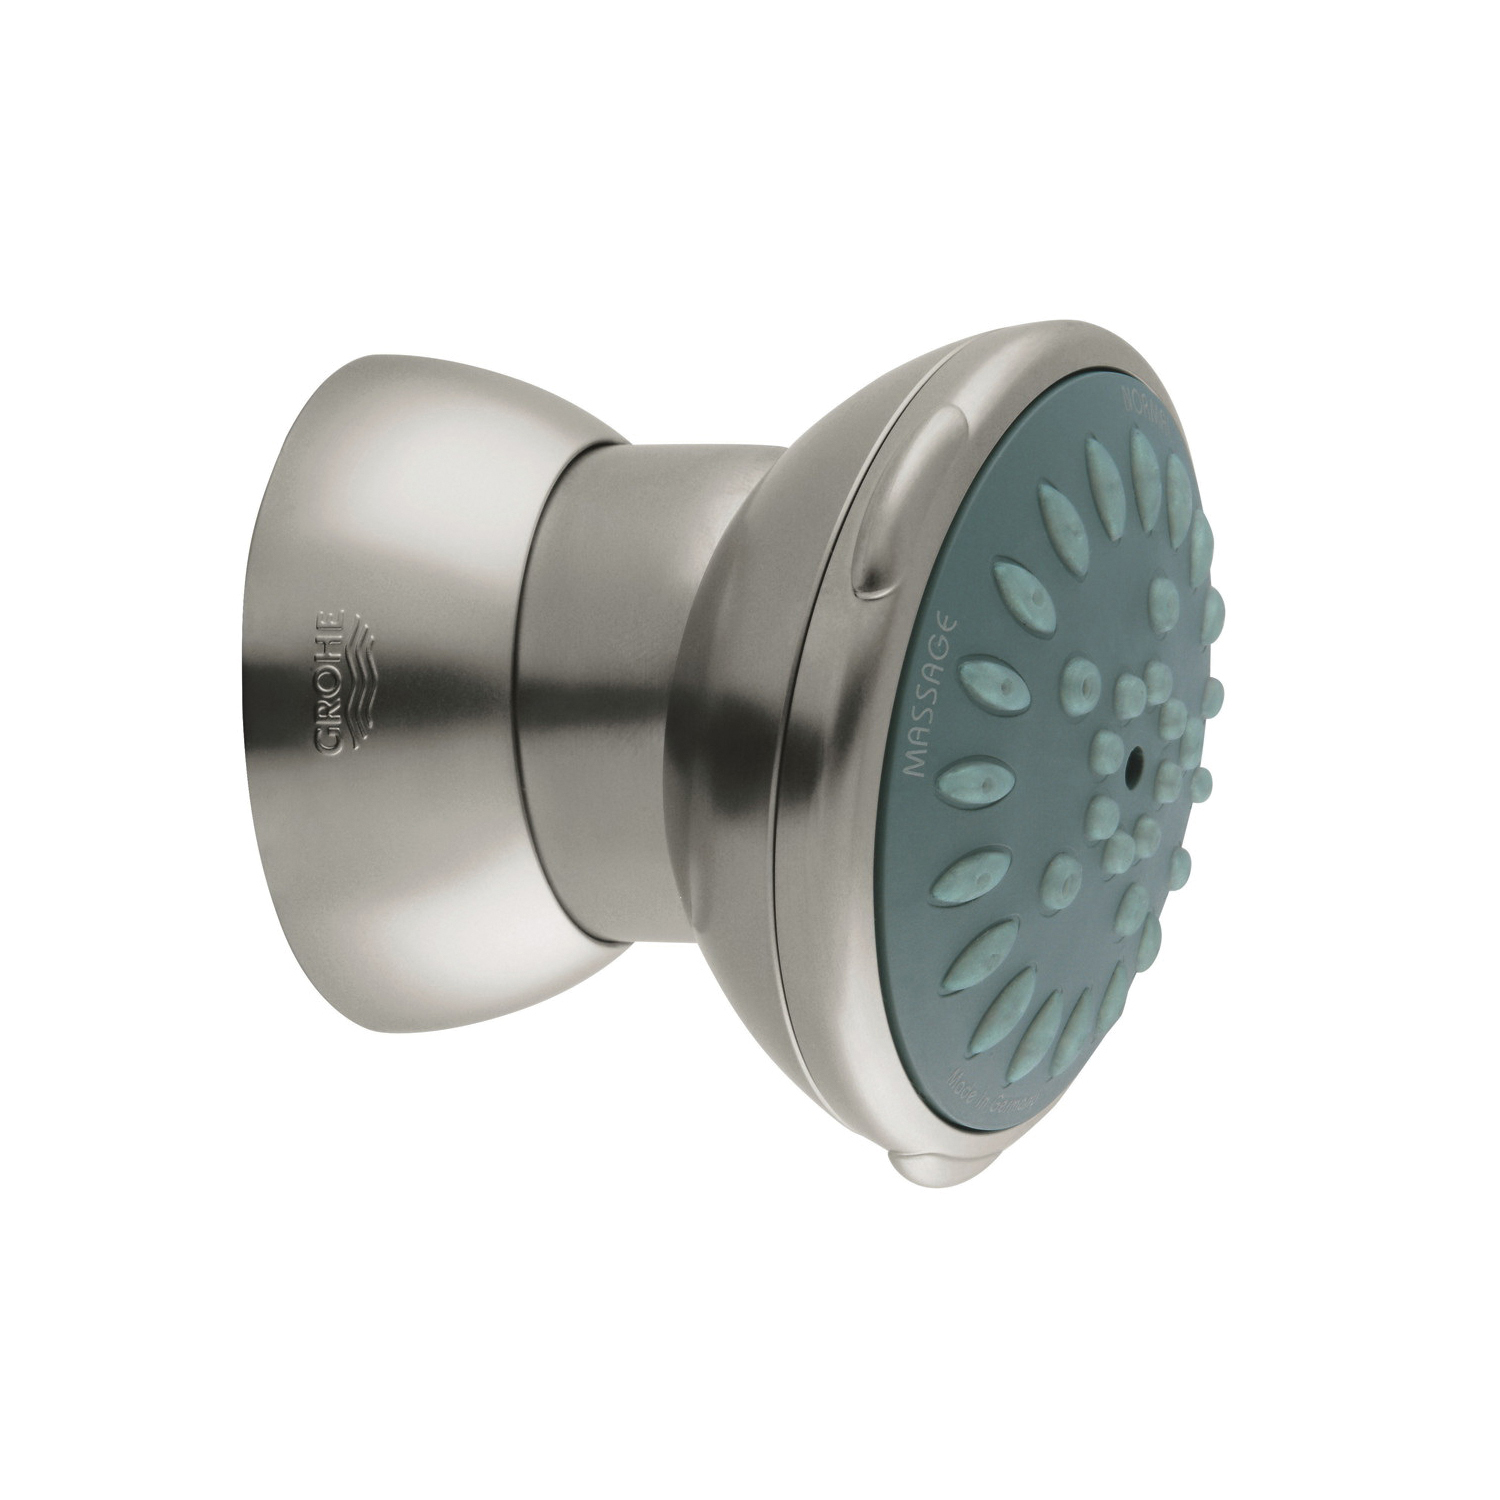 GROHE 28528EN0 Movario 70 Side Shower, (2) Normal/Massage Spray, 2.5 gpm Maximum, Round Head, Wall Mount, Import